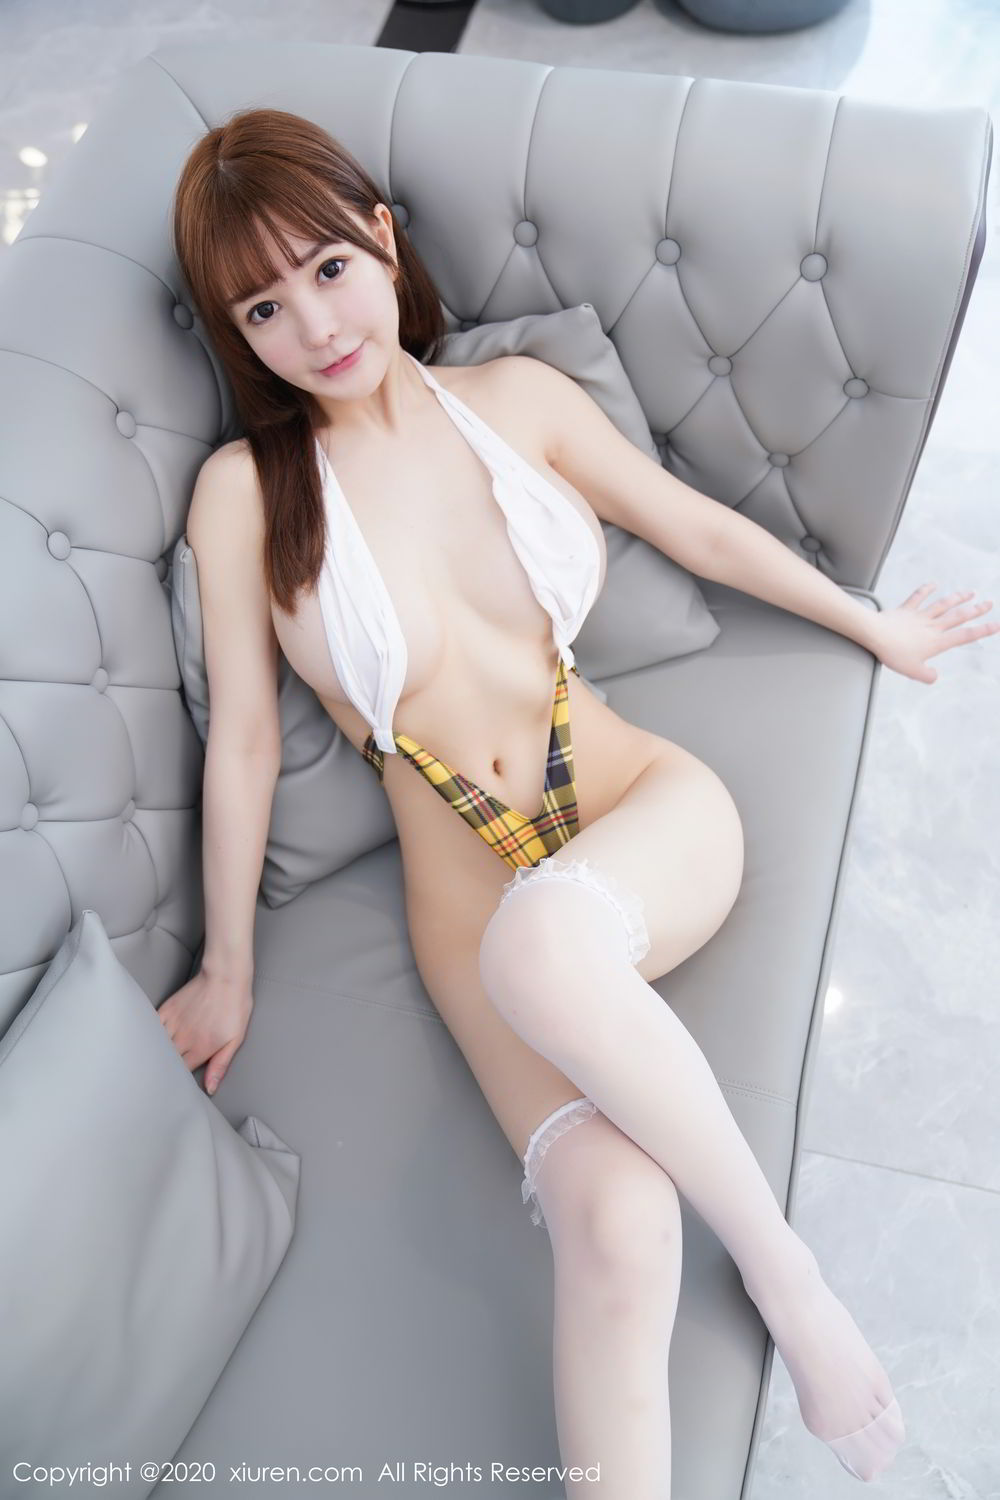 [XiuRen] Vol.2115 Uu Jiang 21P, Baby Face Big Boobs, Cute, UU Jiang, Xiuren